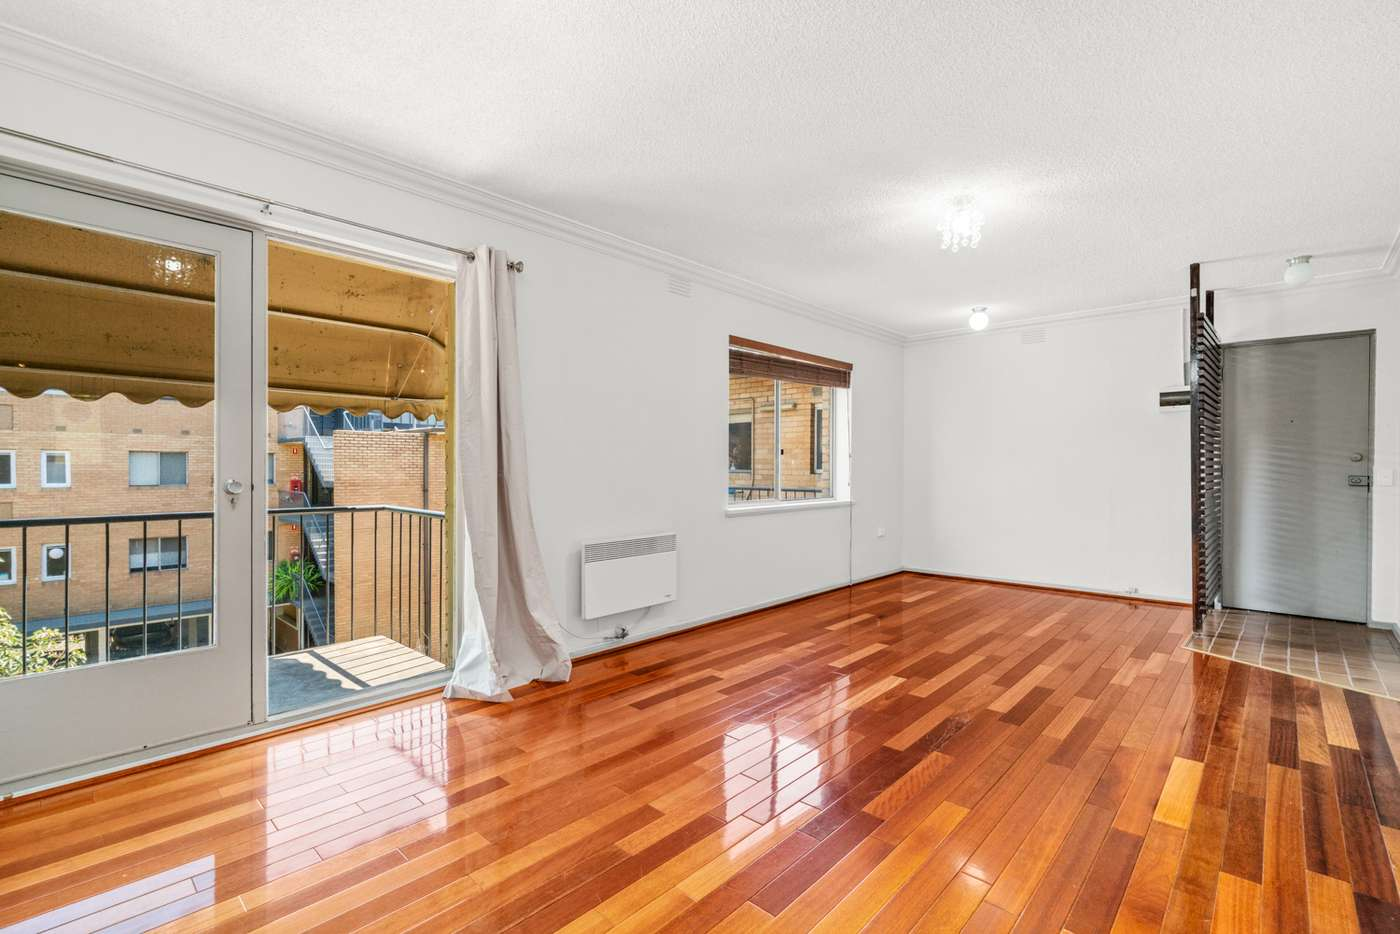 Main view of Homely apartment listing, 9/55 Haines Street, North Melbourne VIC 3051